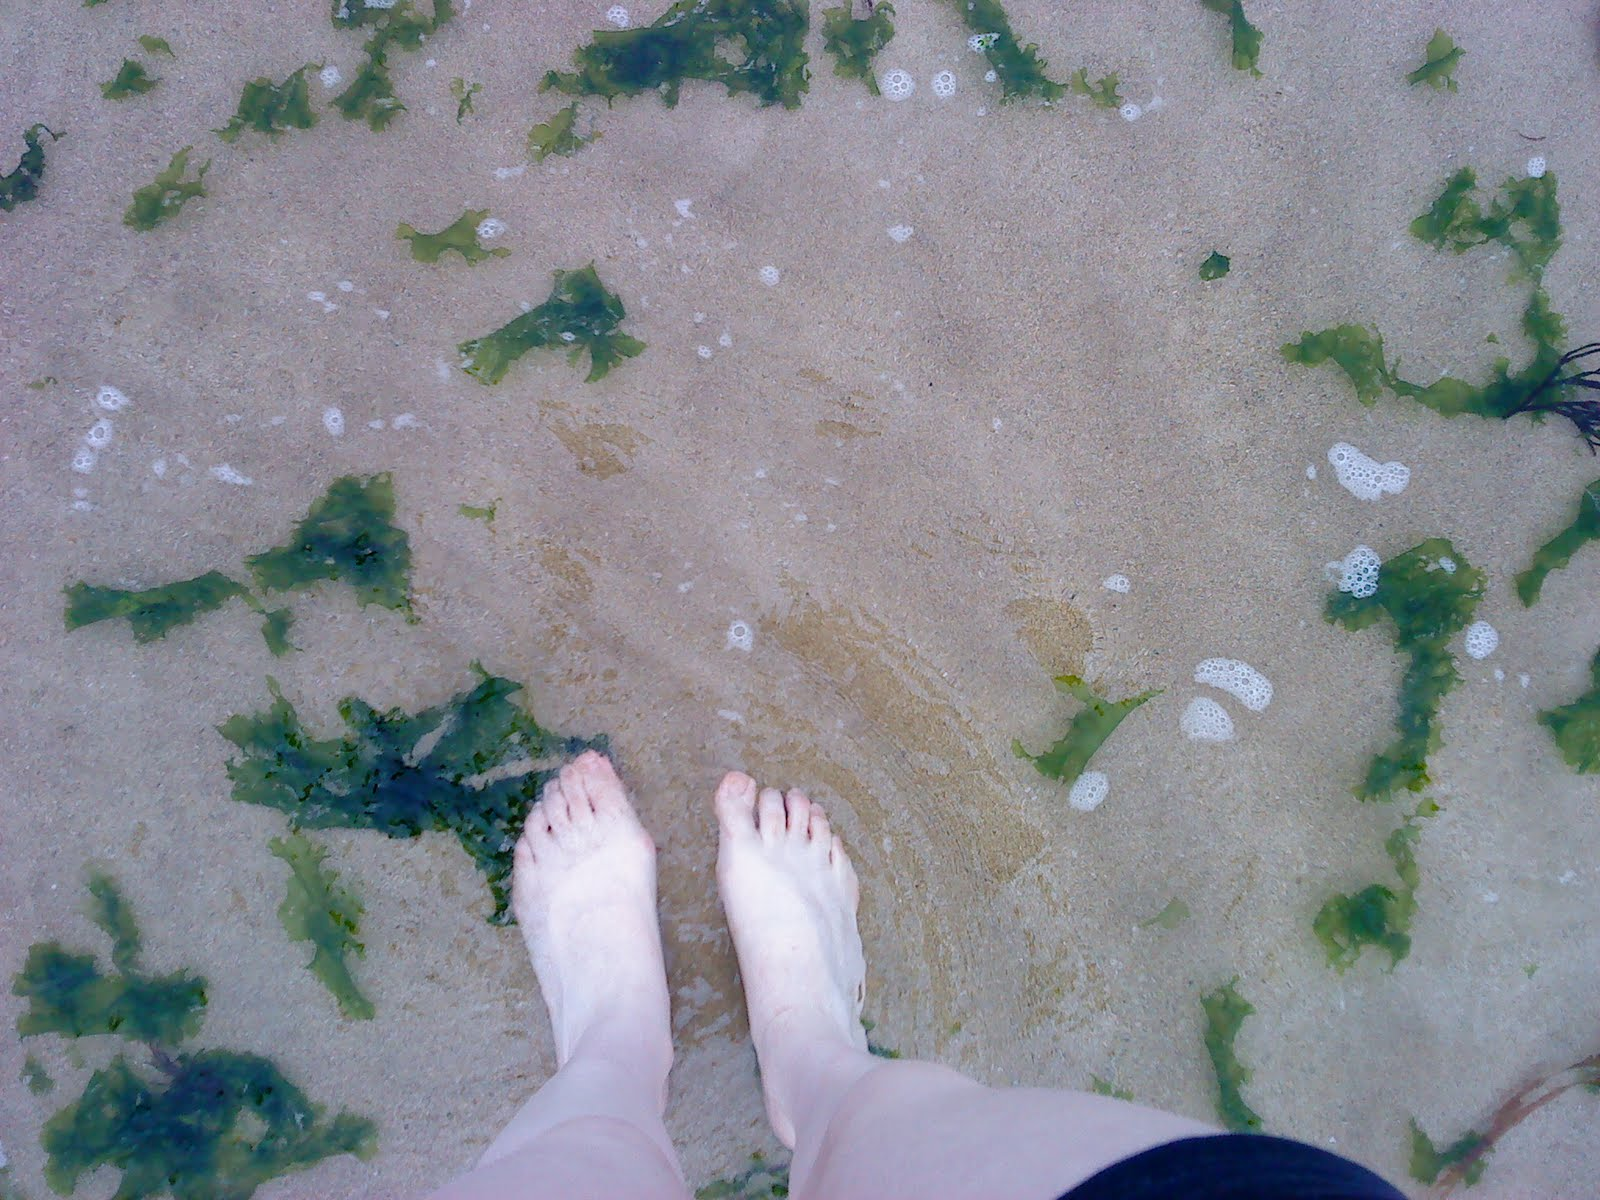 Ana's little feet in the water, on Sunday